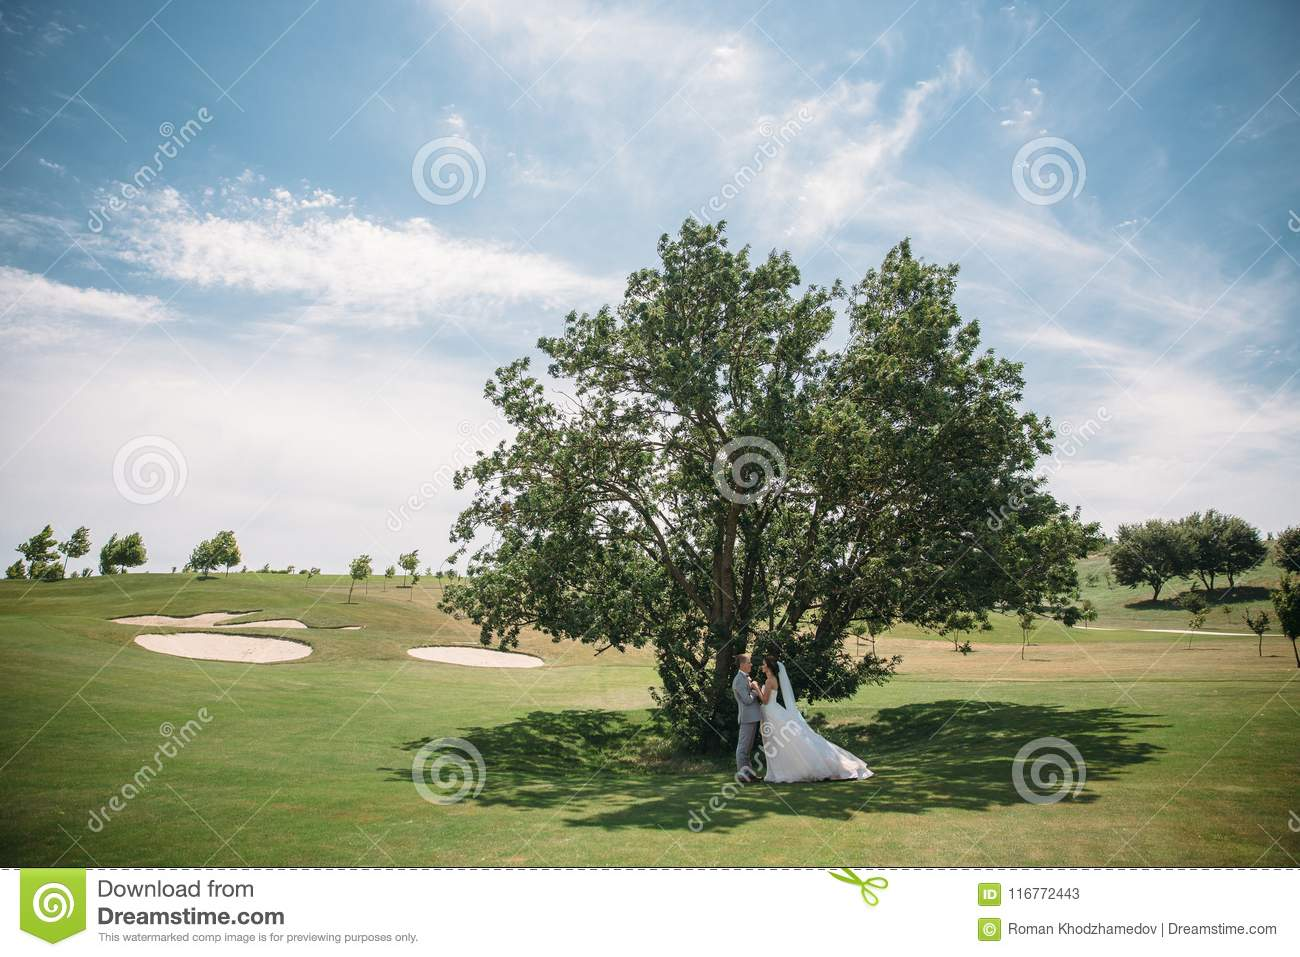 Newlyweds on a green tree background in a golf club on a wedding day. The groom in a business suit is gray and the bride